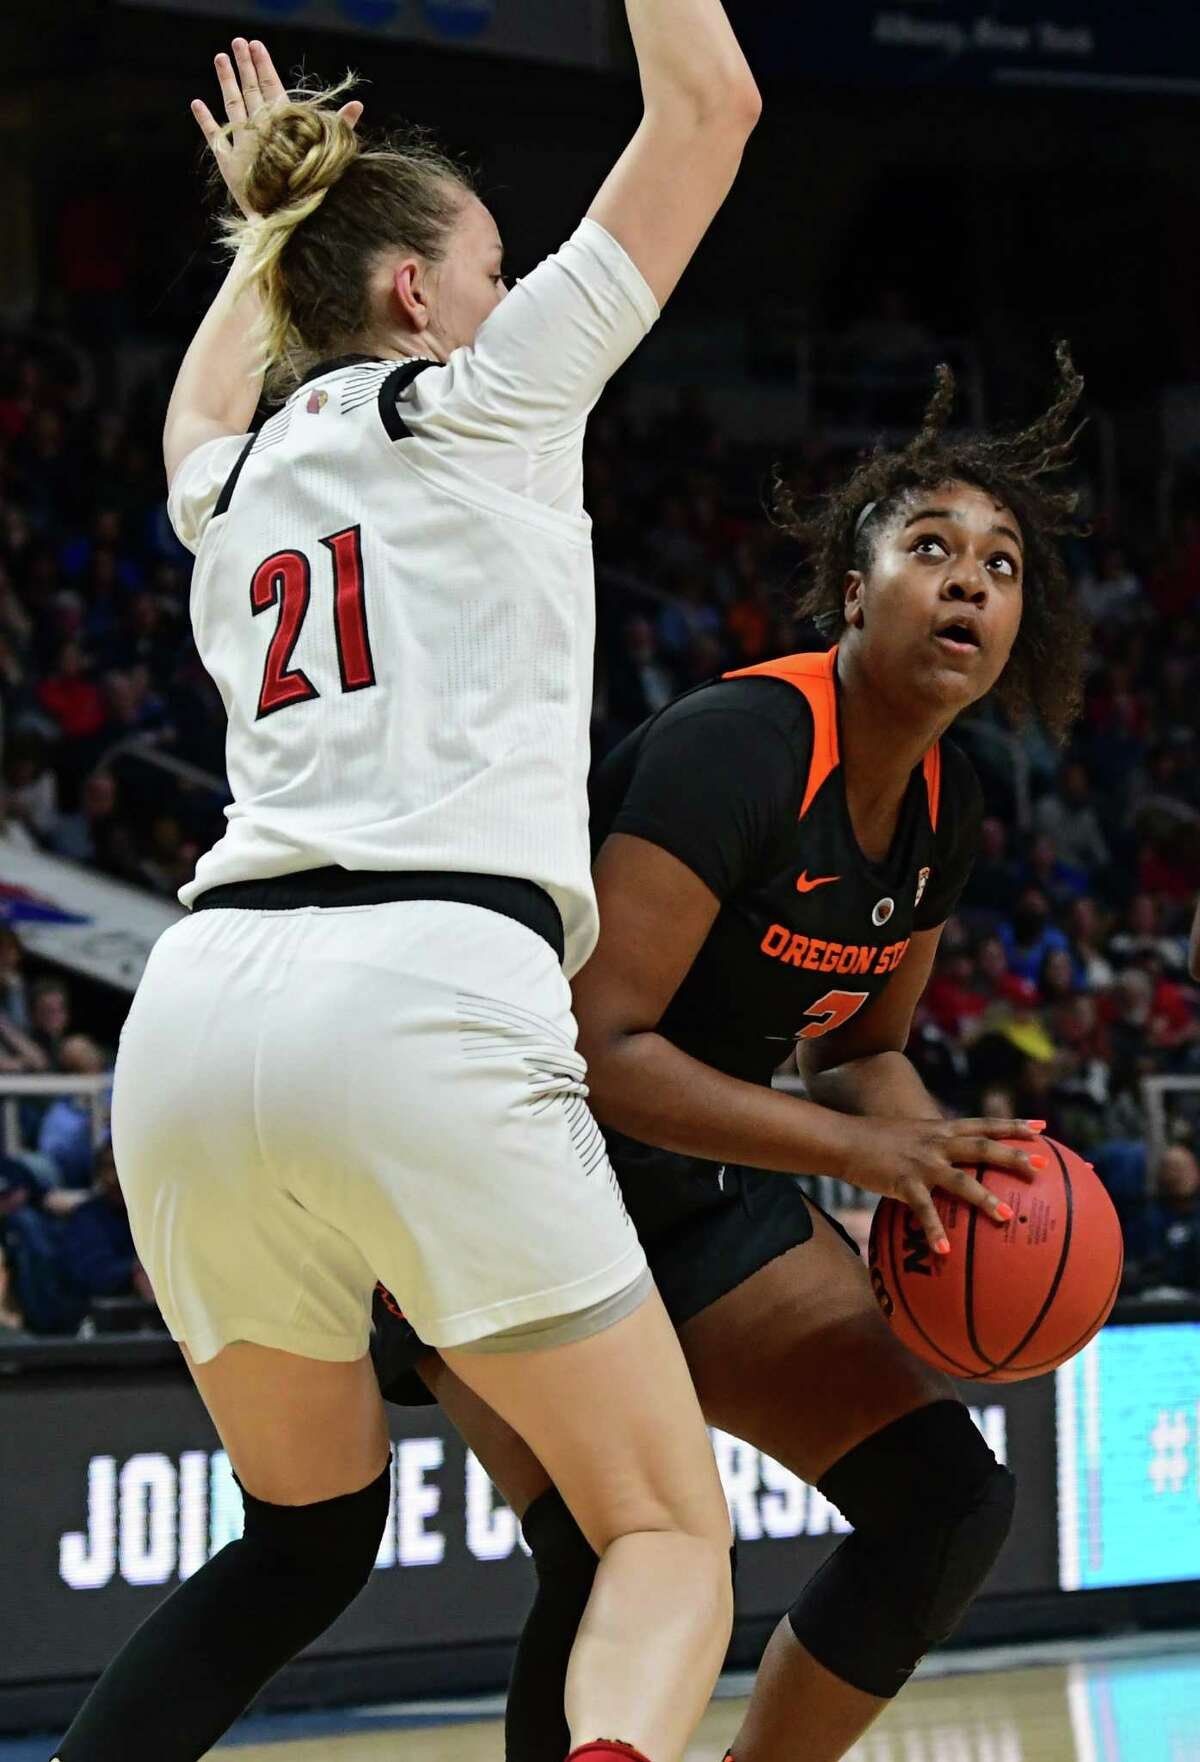 Oregon State's Madison Washington drives to the net against Louisville's Kylee Shook in a semifinal for the Albany Regional of the NCAA Women's Basketball Championship at the Times Union Center on Friday, March 29, 2019 in Albany, N.Y. (Lori Van Buren/Times Union)